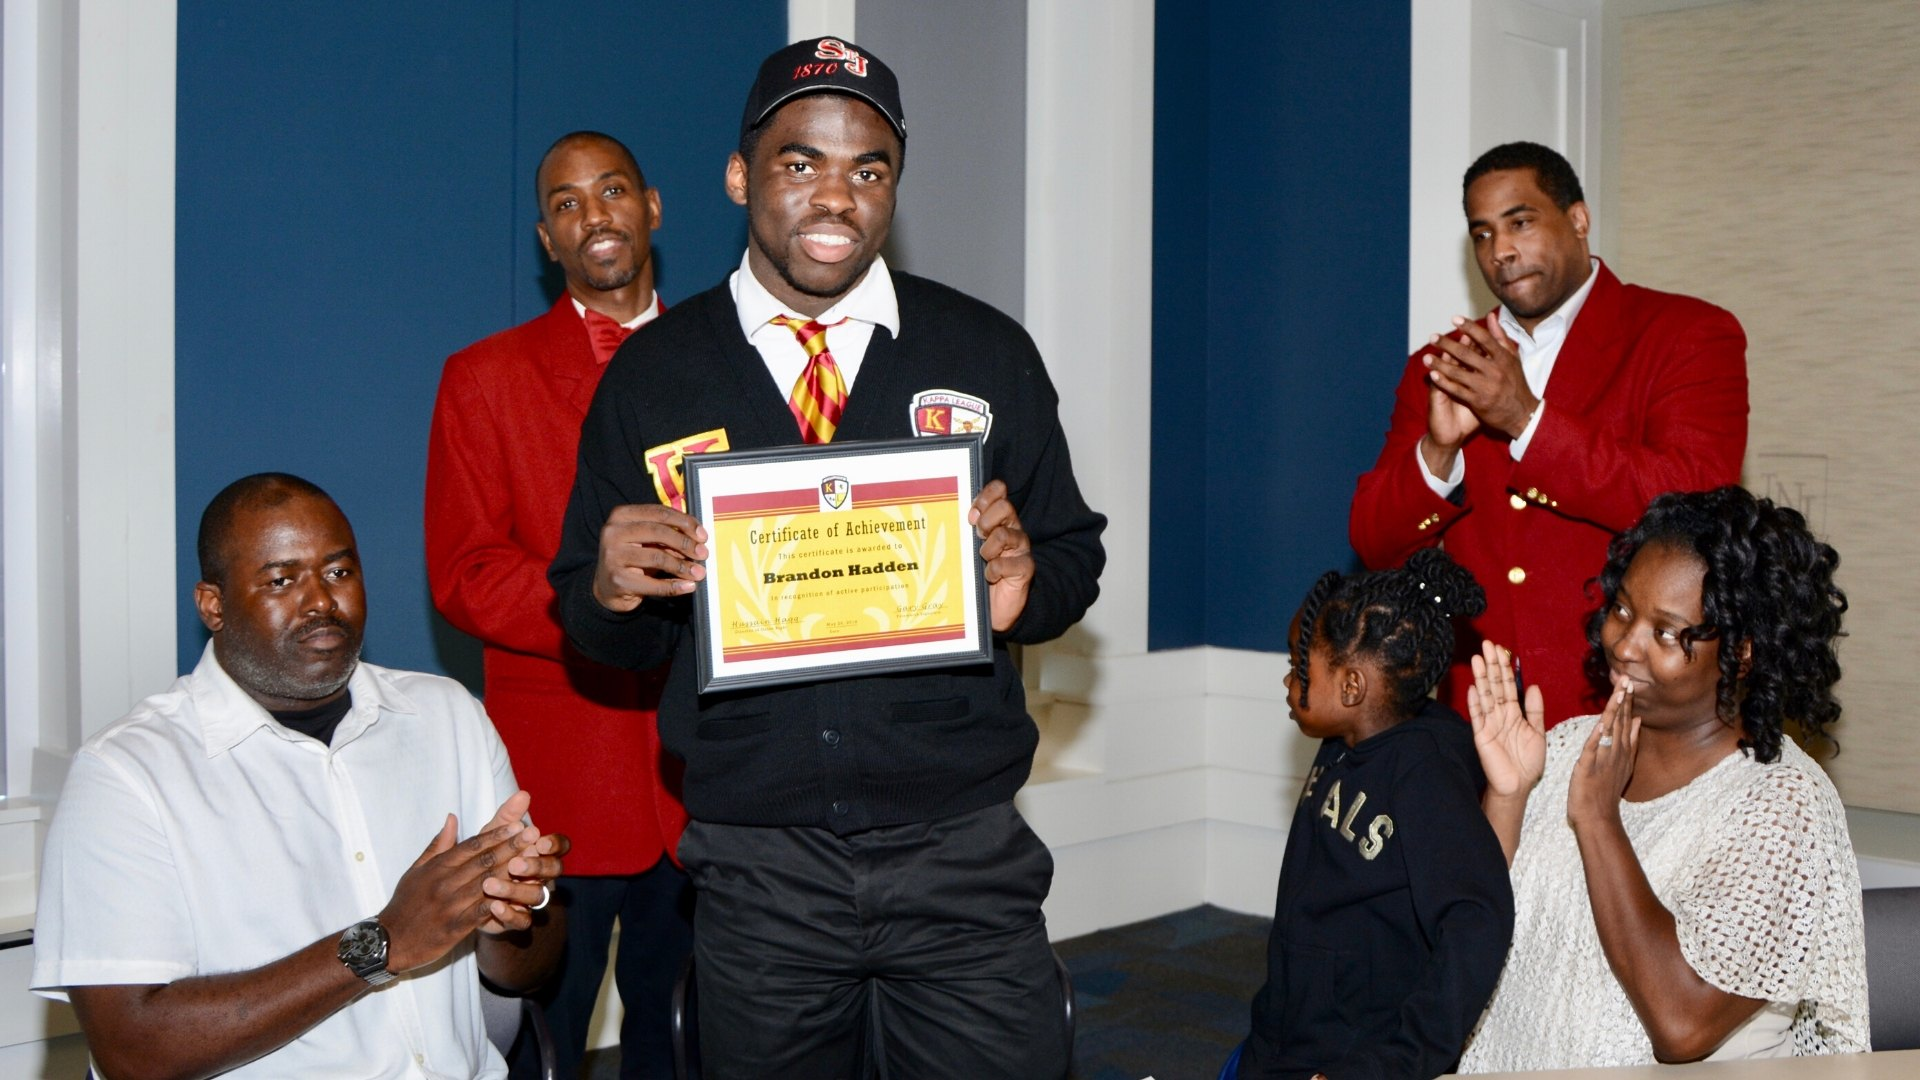 Photo of Young Man receiving an award at College signing Day event